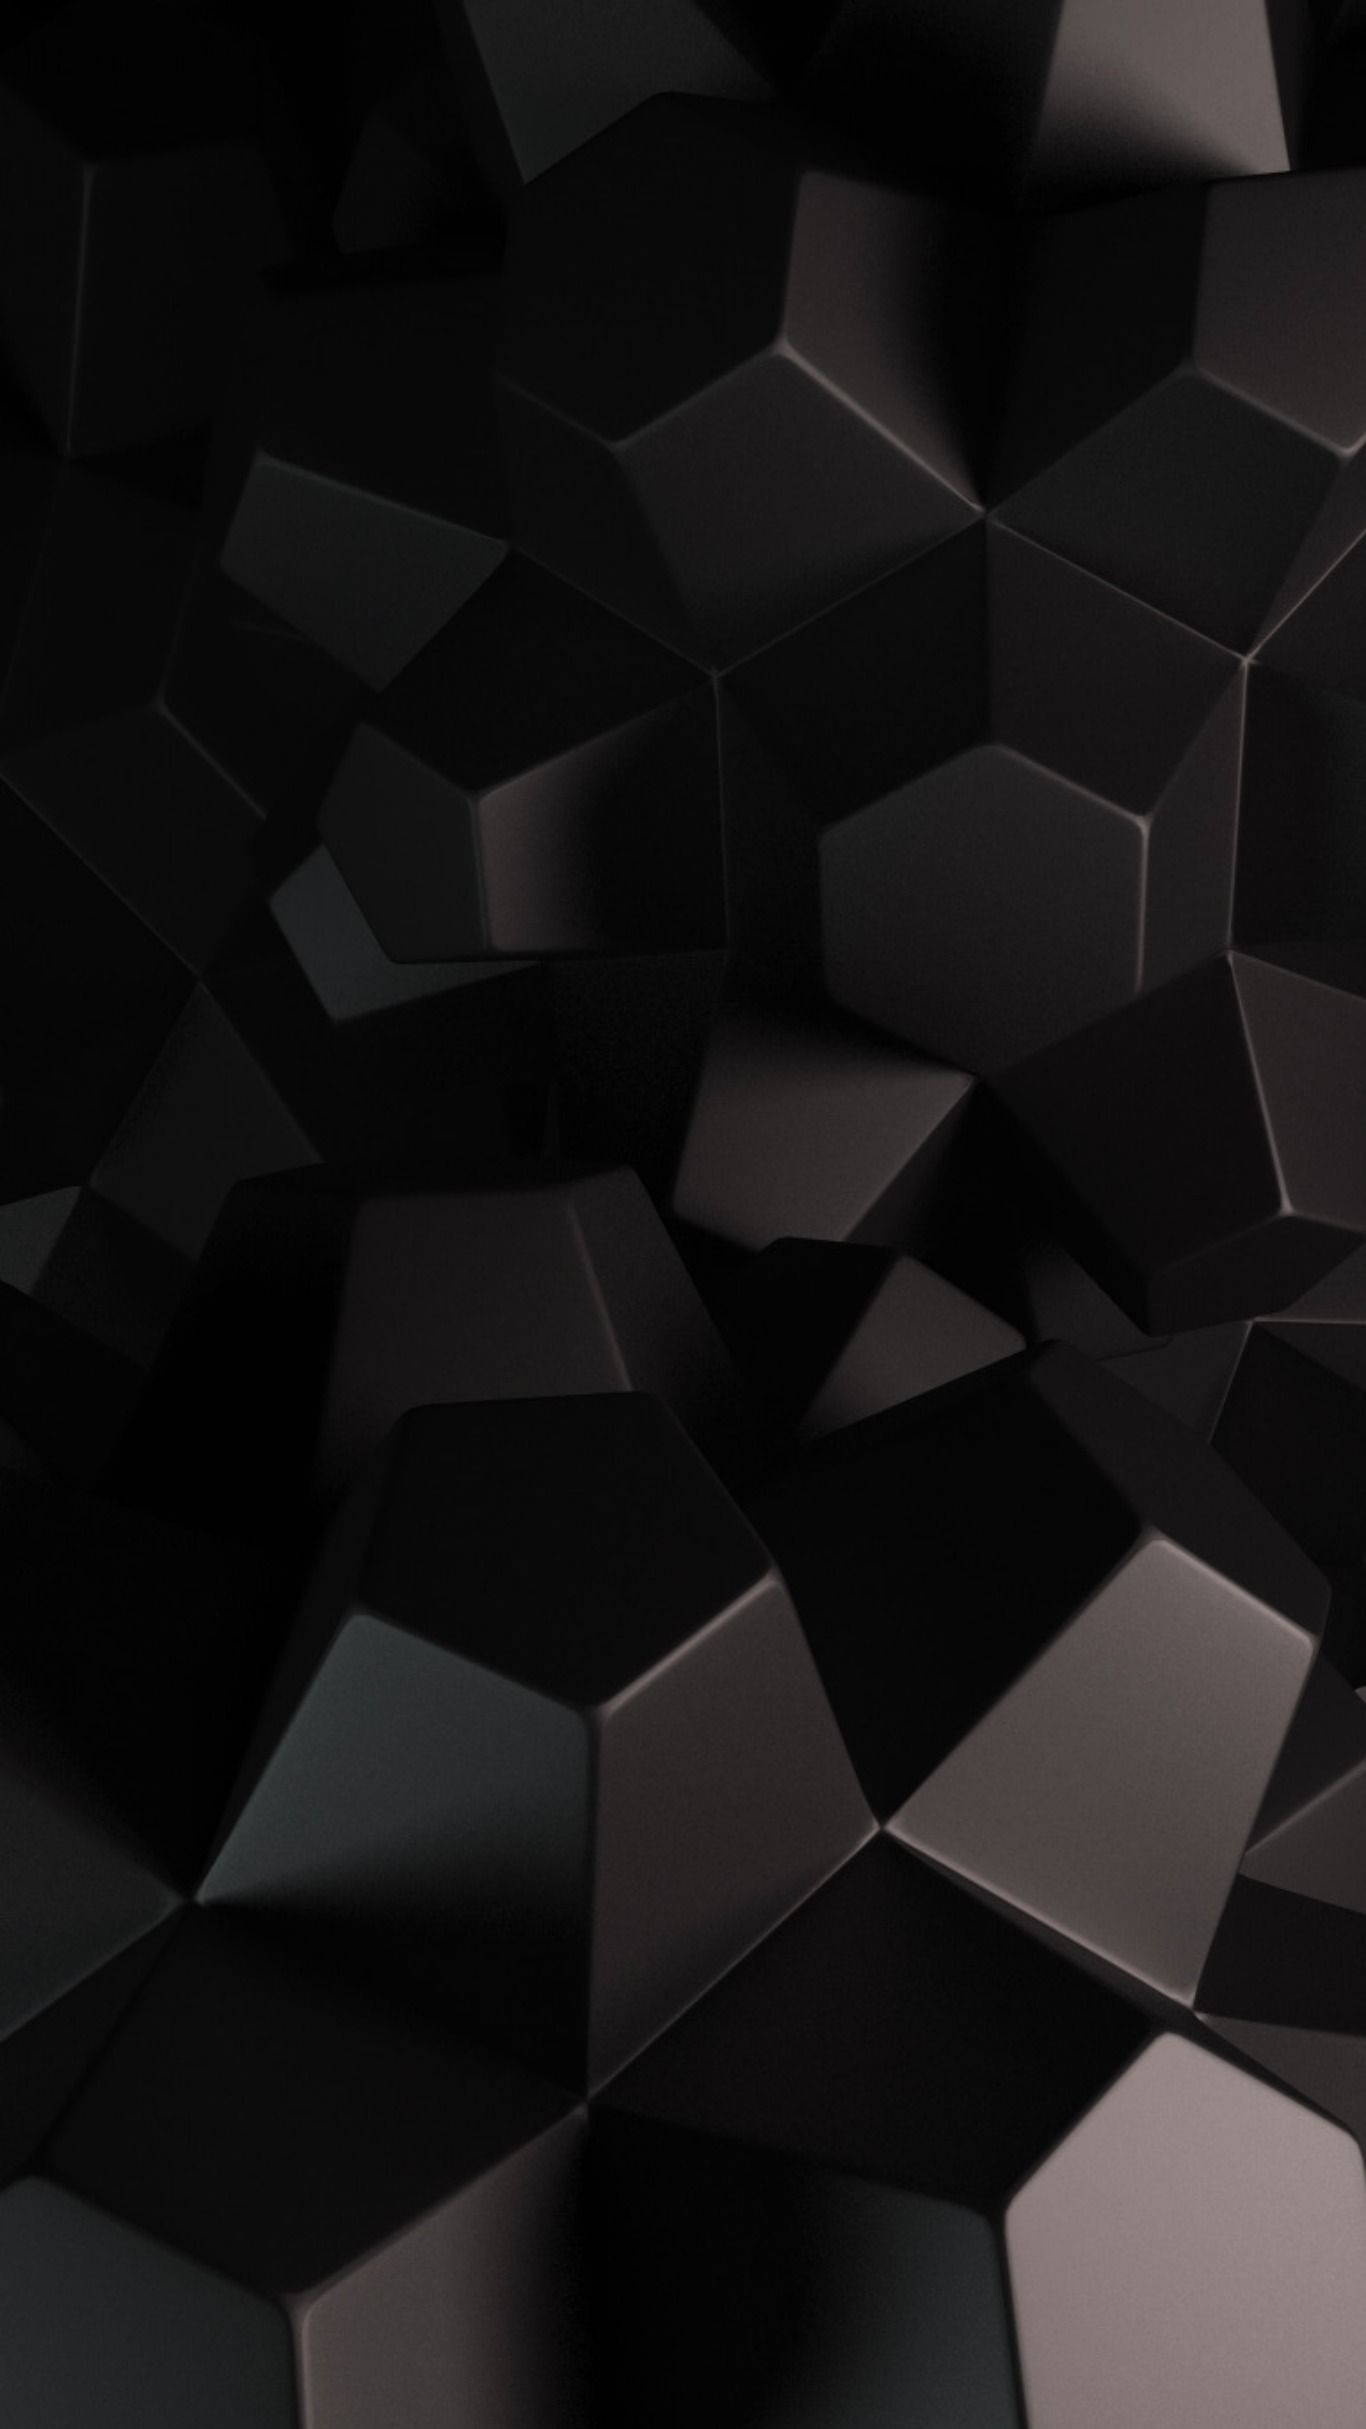 Dark Abstrack Hd Design Wallpapers Ultrahd Iphone Android Backgrounds Black White 4k Hexagon Wallpaper Htc Wallpaper Iphone Wallpaper